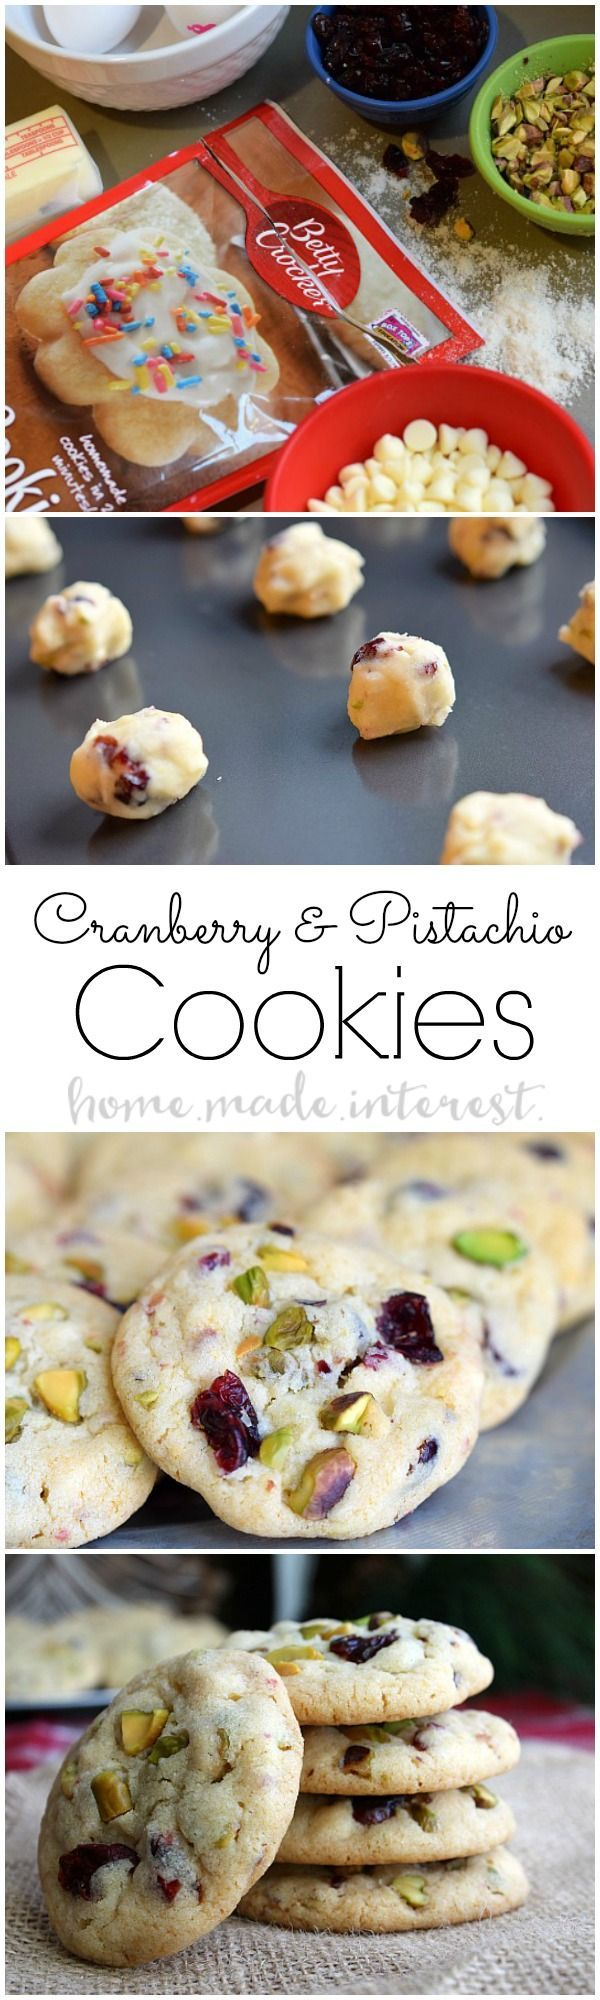 This easy Christmas cookie recipe is a simple sugar cookie packed with white chocolate, dried cranberries, and pistachios.#SpreadCheer #ad